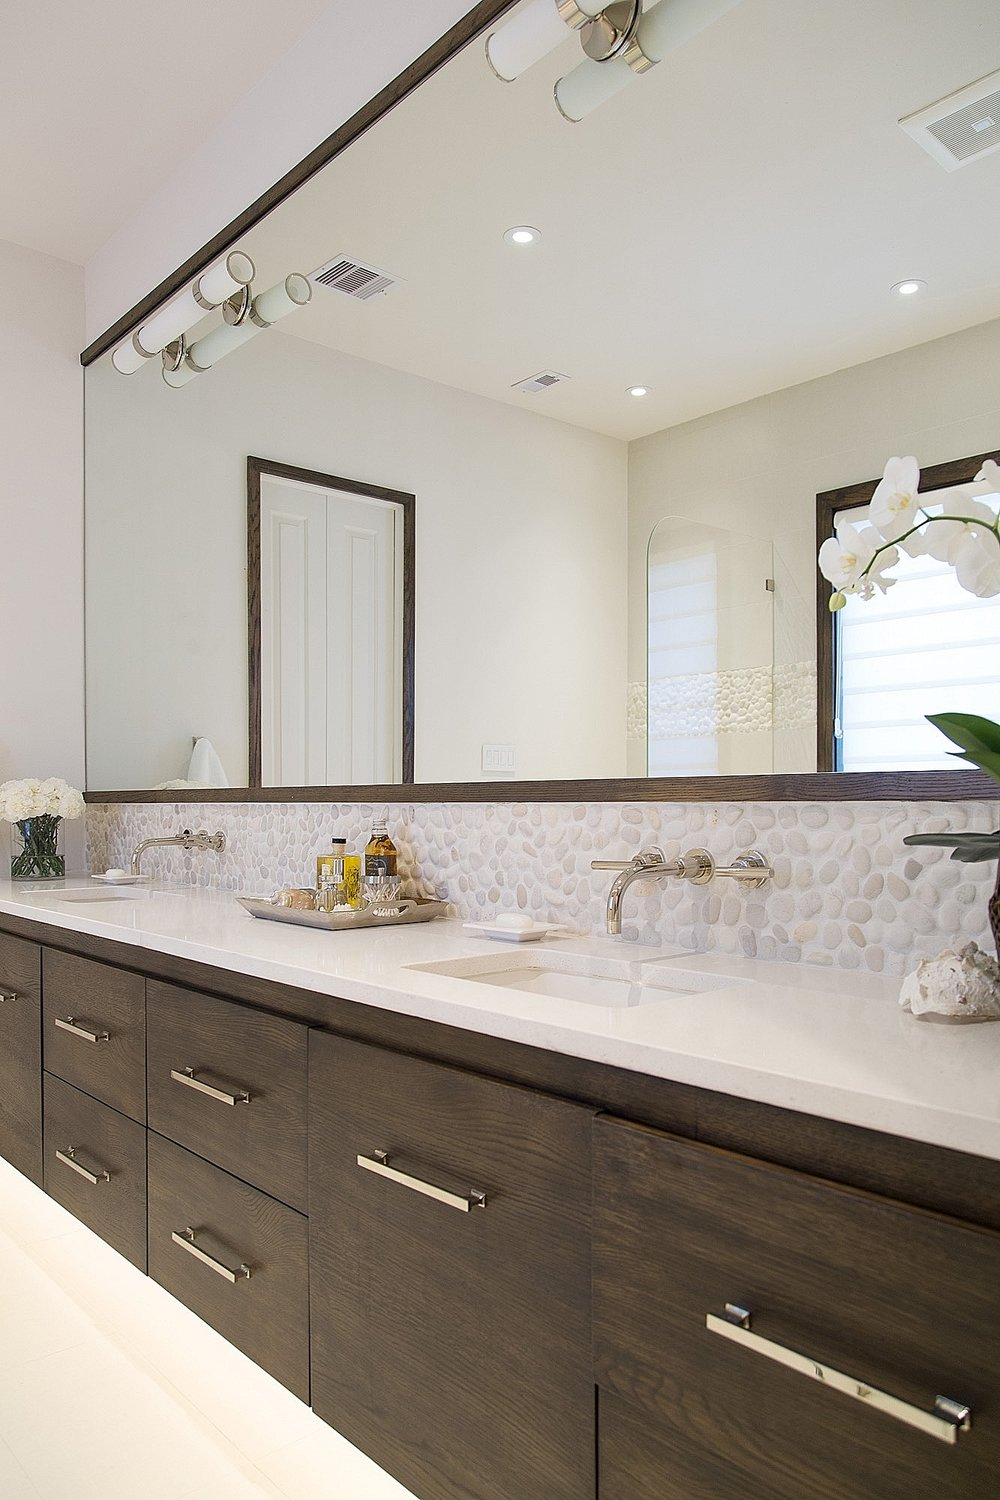 Wall to wall mirror to make bathroom seem bigger - Designer Carla Aston, Photo by Tori Aston